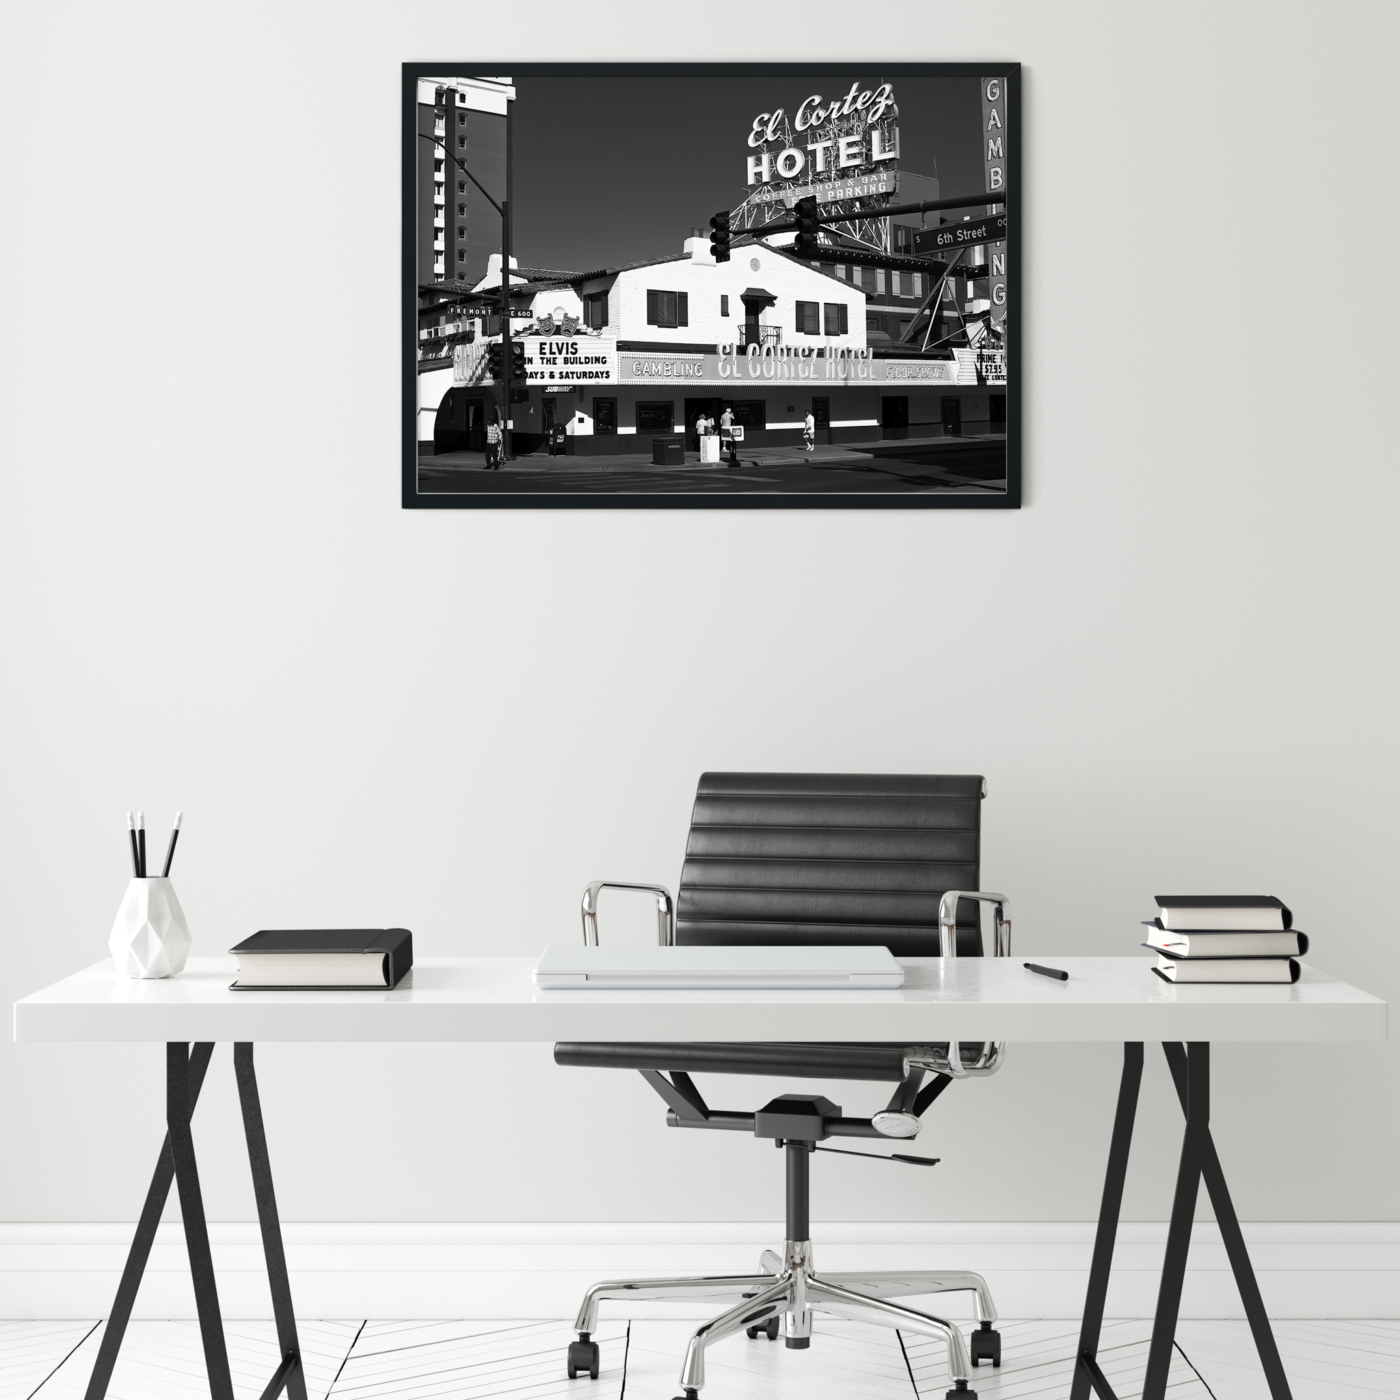 El Cortez Hotel, Las Vegas - black and white photography, print without border in black frame on the wall